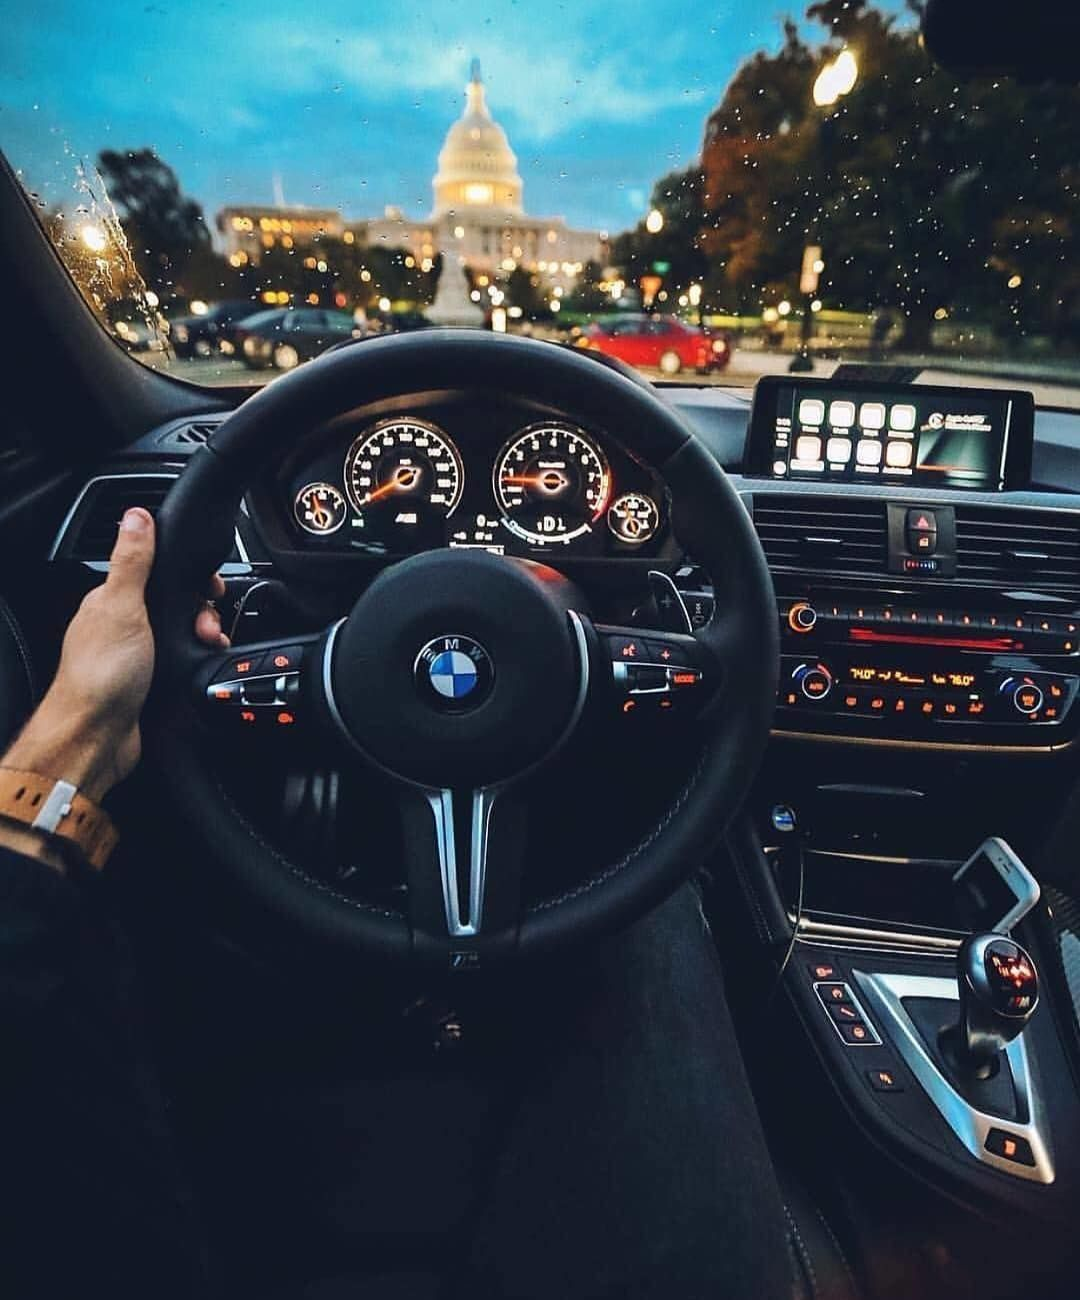 Image May Contain Car Bmw Bmw Interior Bmw Cars